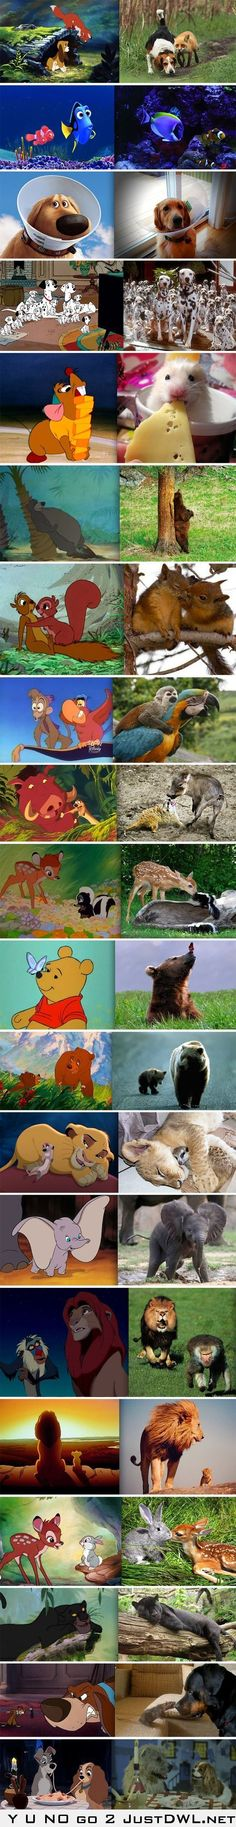 Disney characters in real life. ... www.justdwl.net